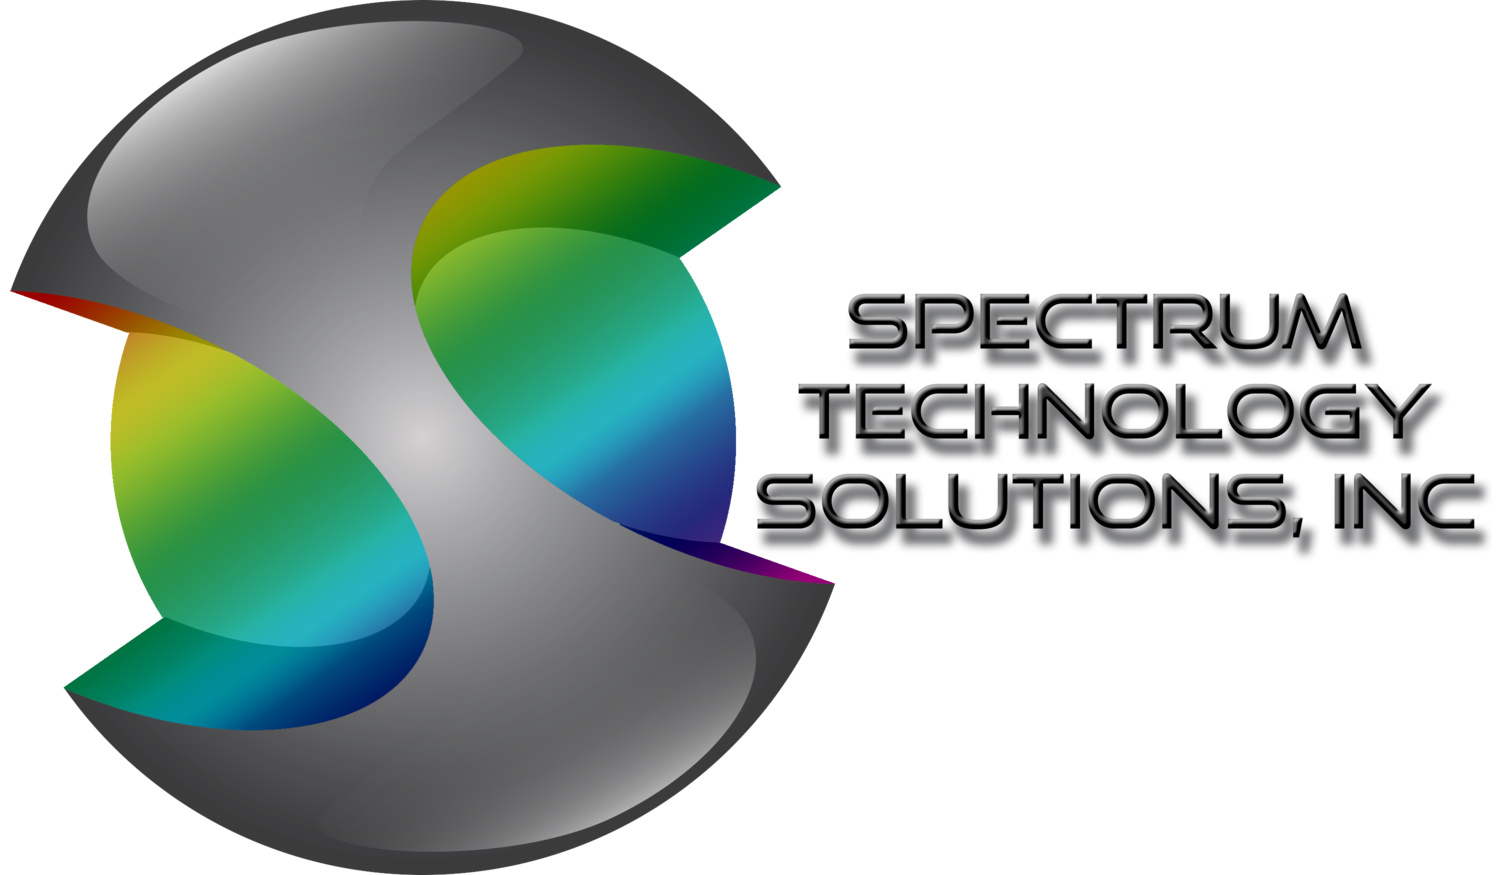 Spectrum Technology Solutions